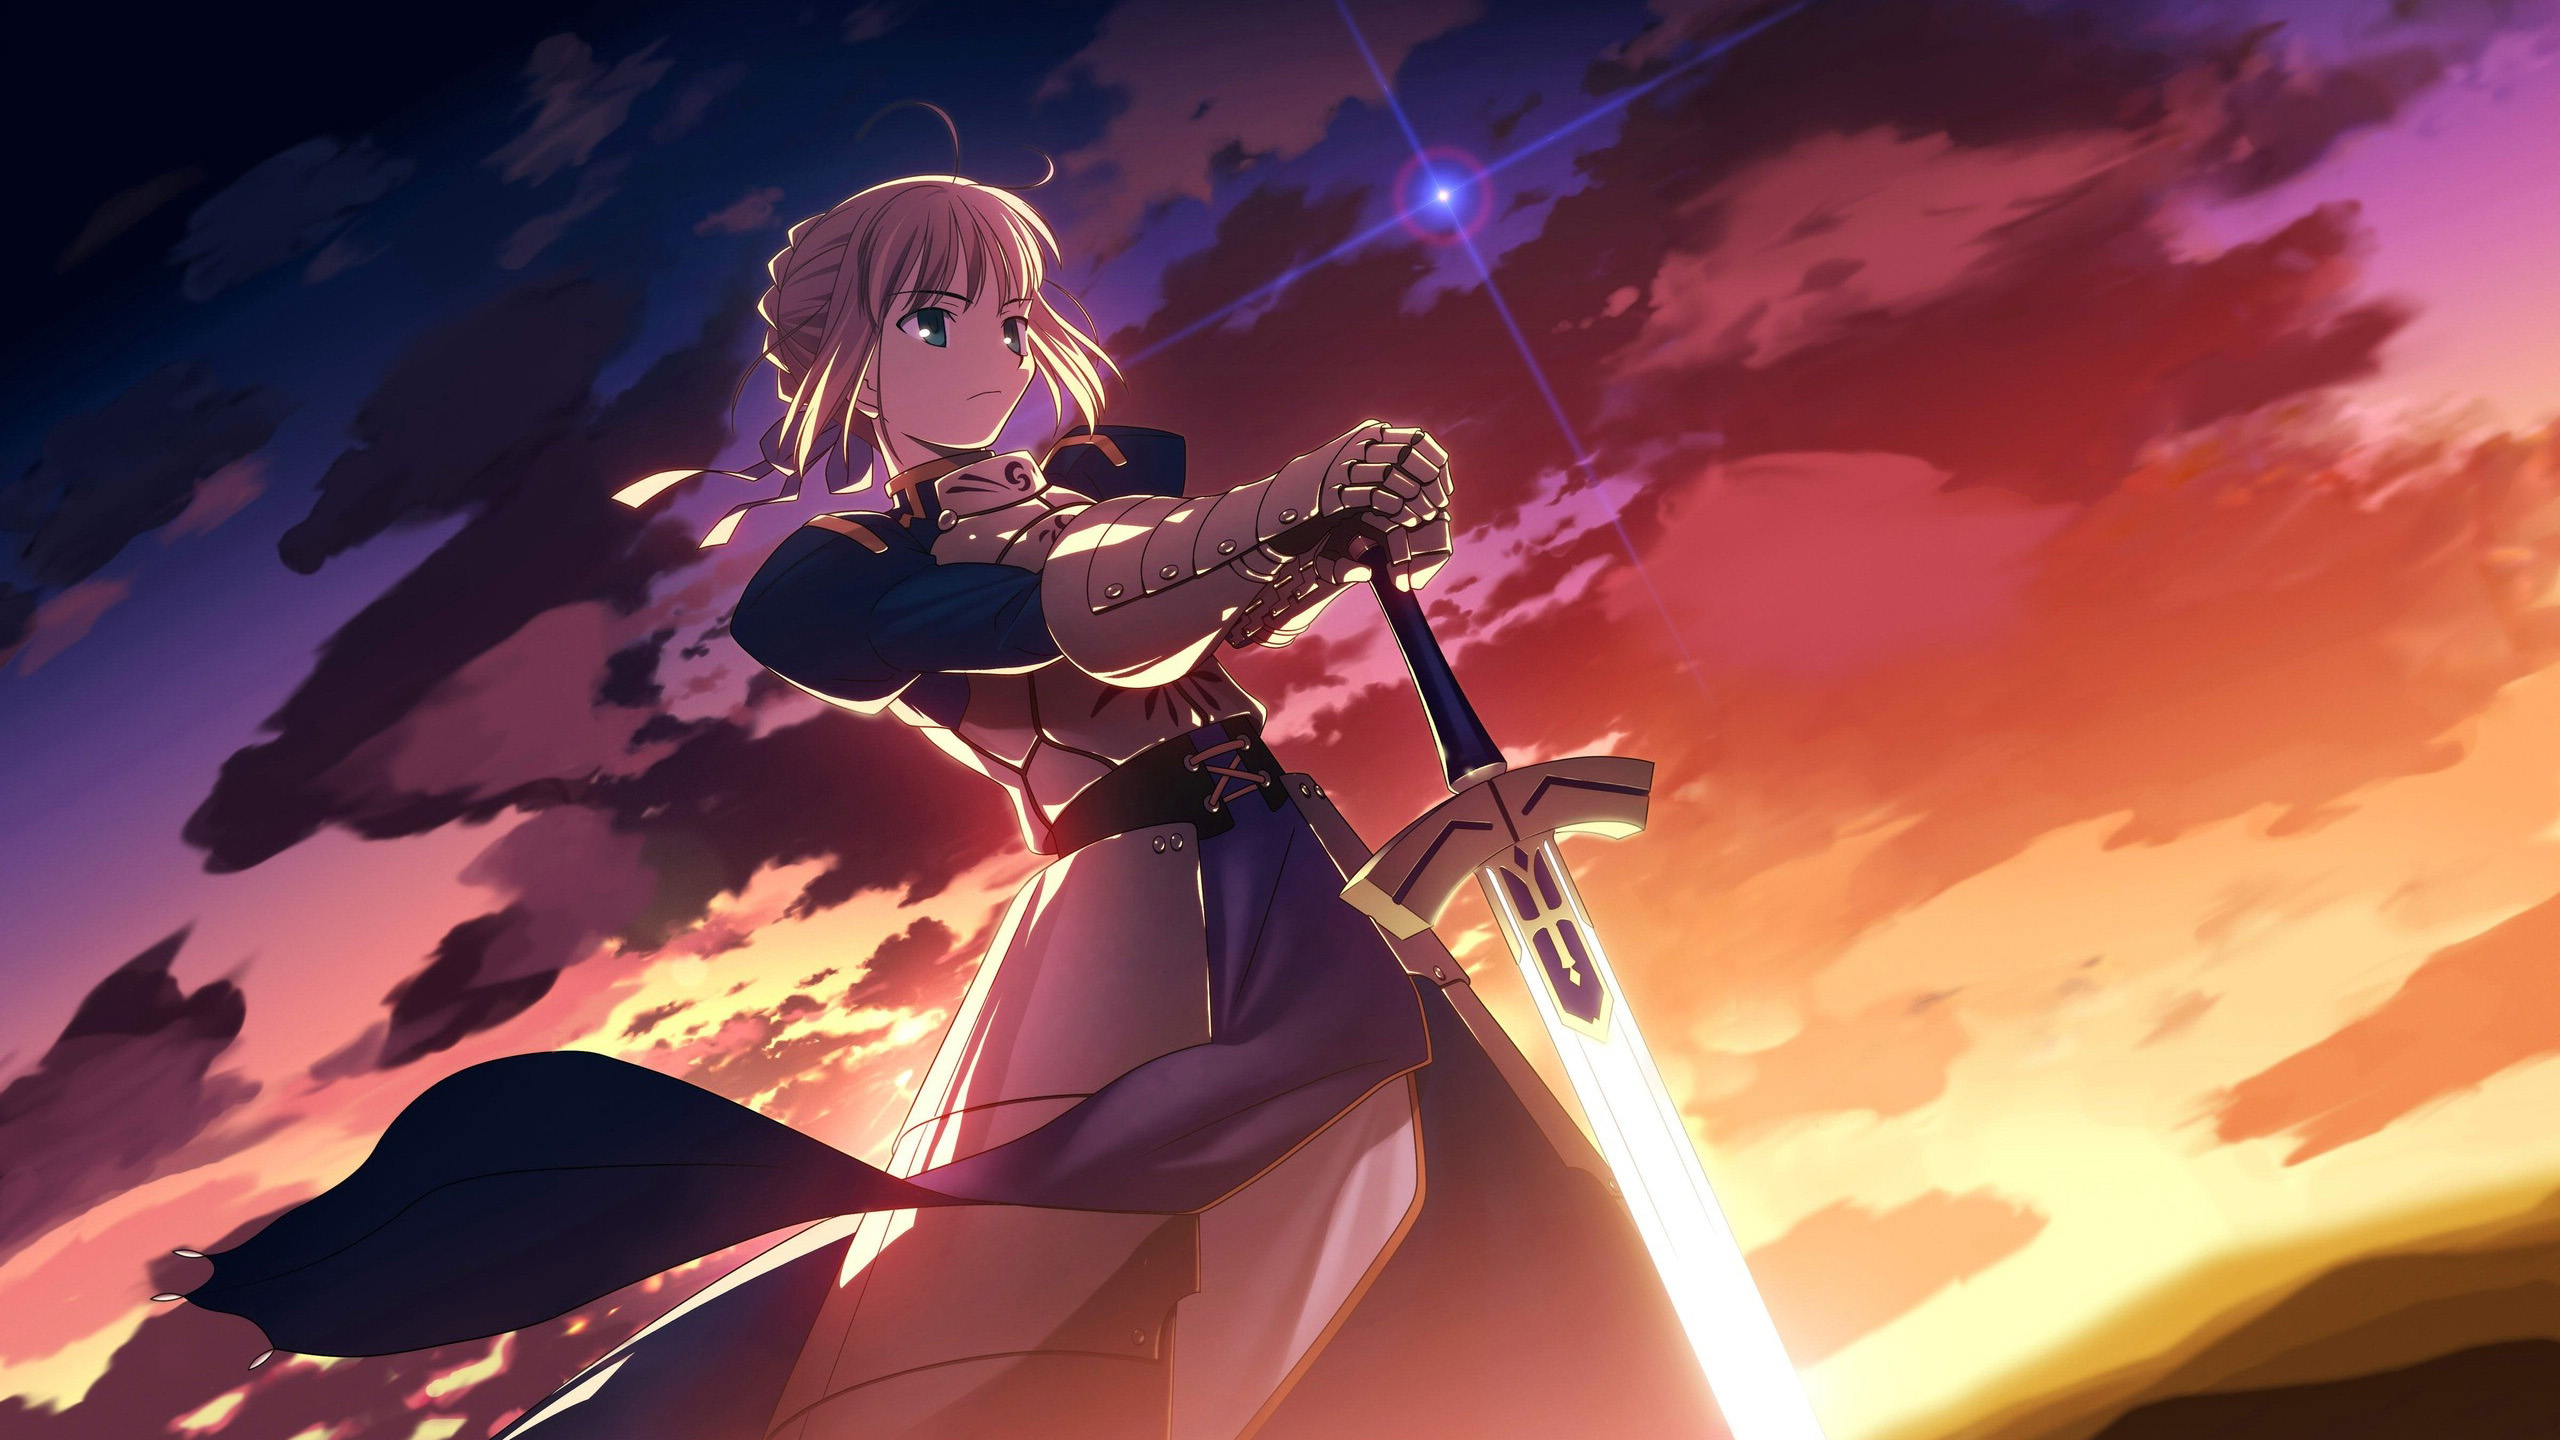 47 Fate Zero Saber Wallpaper On Wallpapersafari